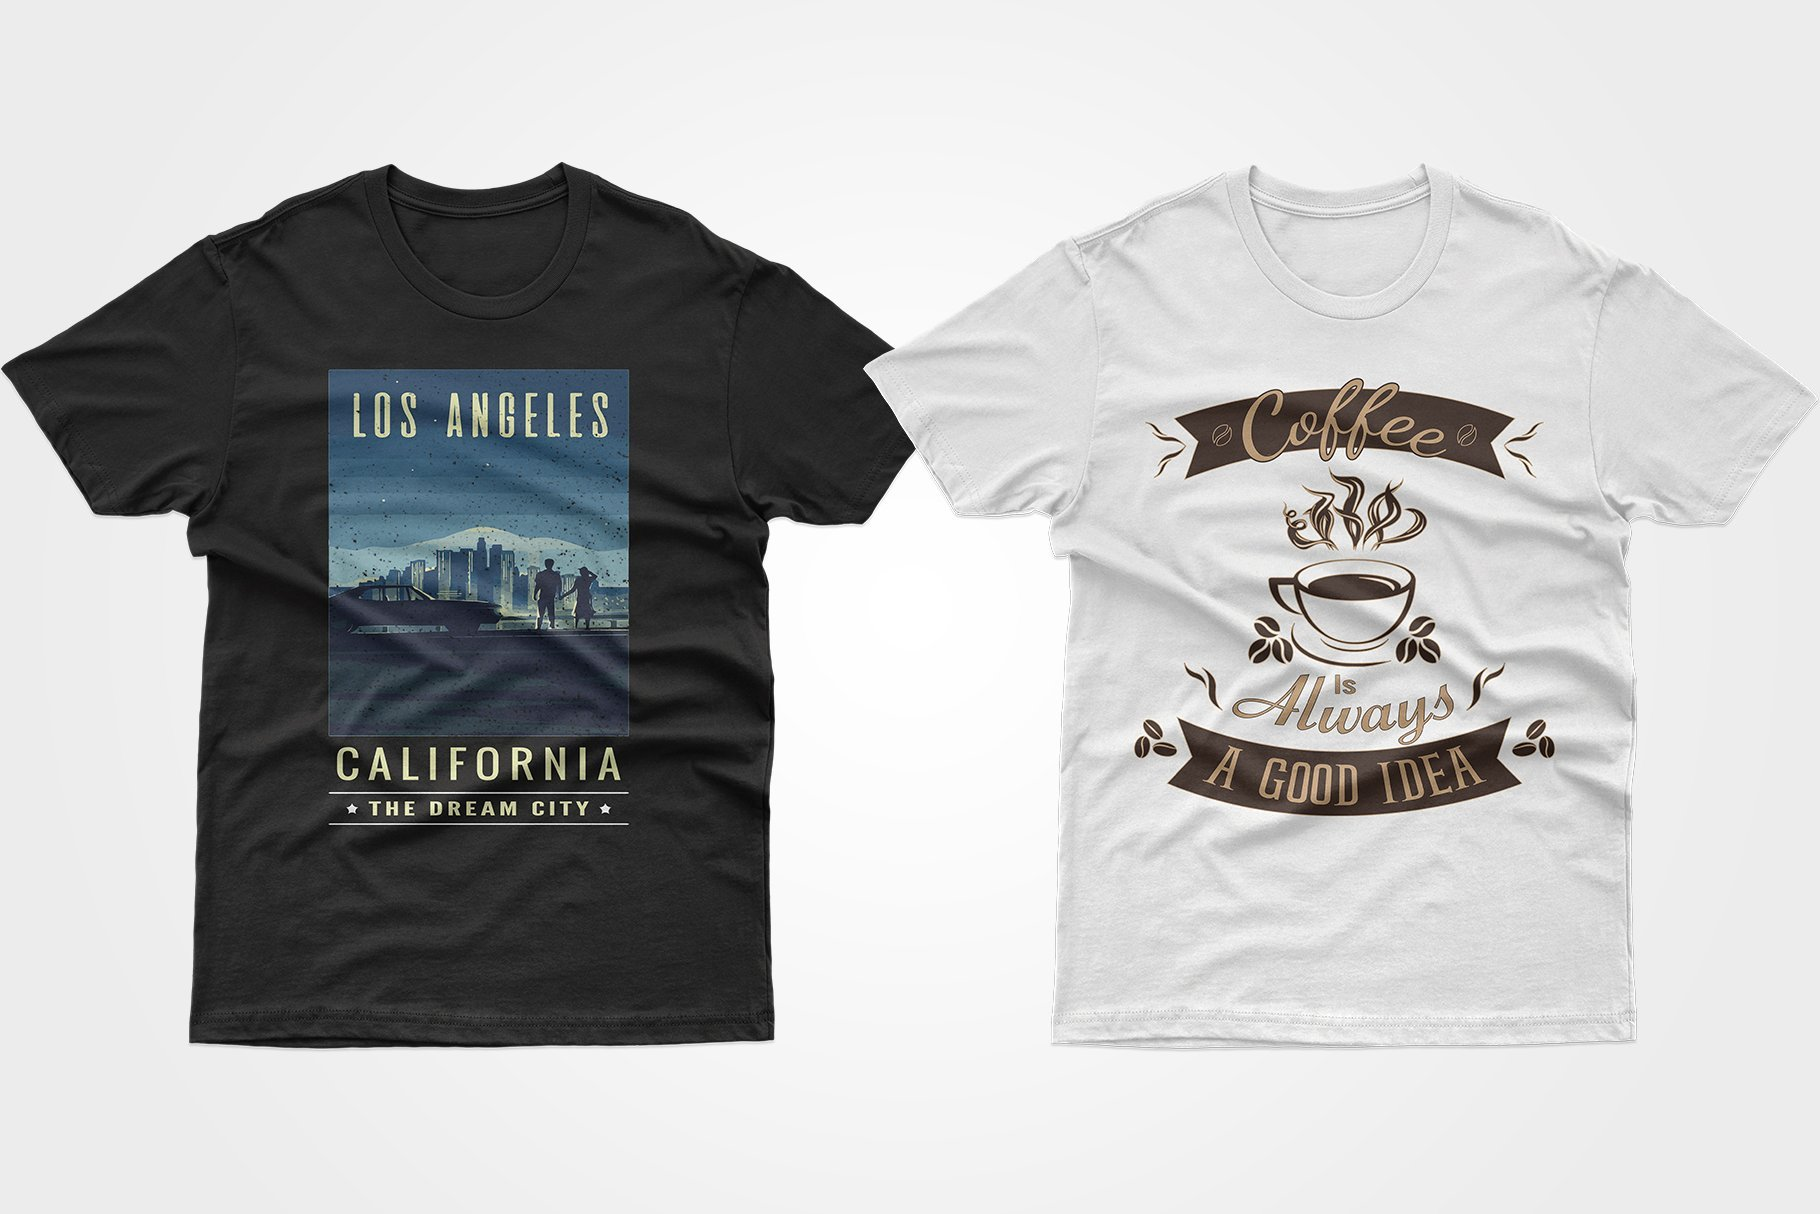 Two black T-shirts - one with a picture of LA, the other with coffee.